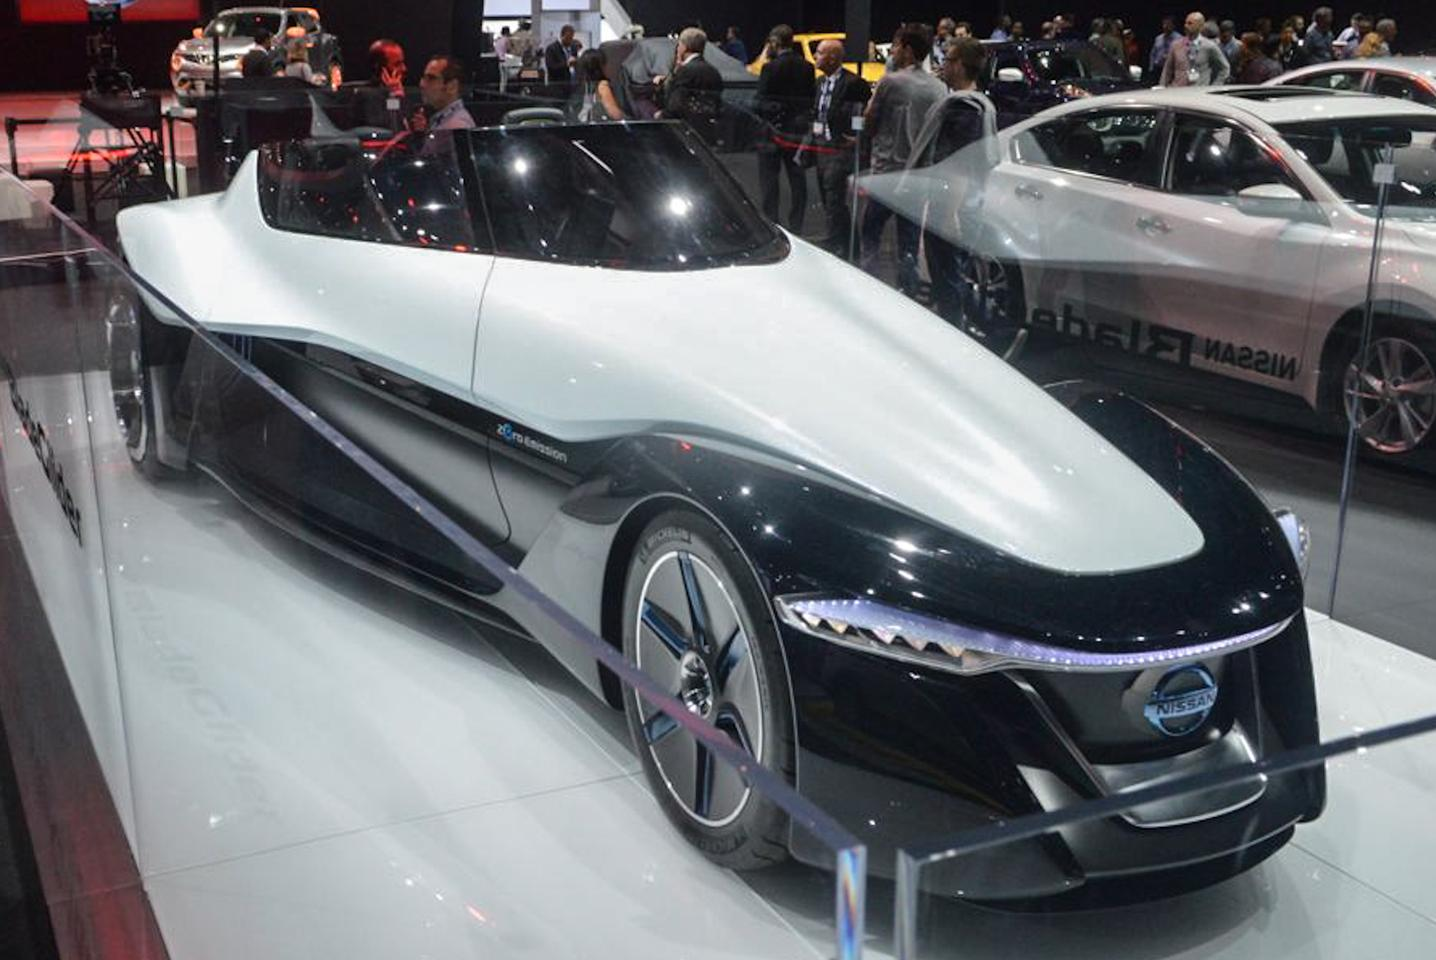 The Nissan BladeGlider shows up a year after its global debut (Photo: C.C. Weiss/Gizmag.com)